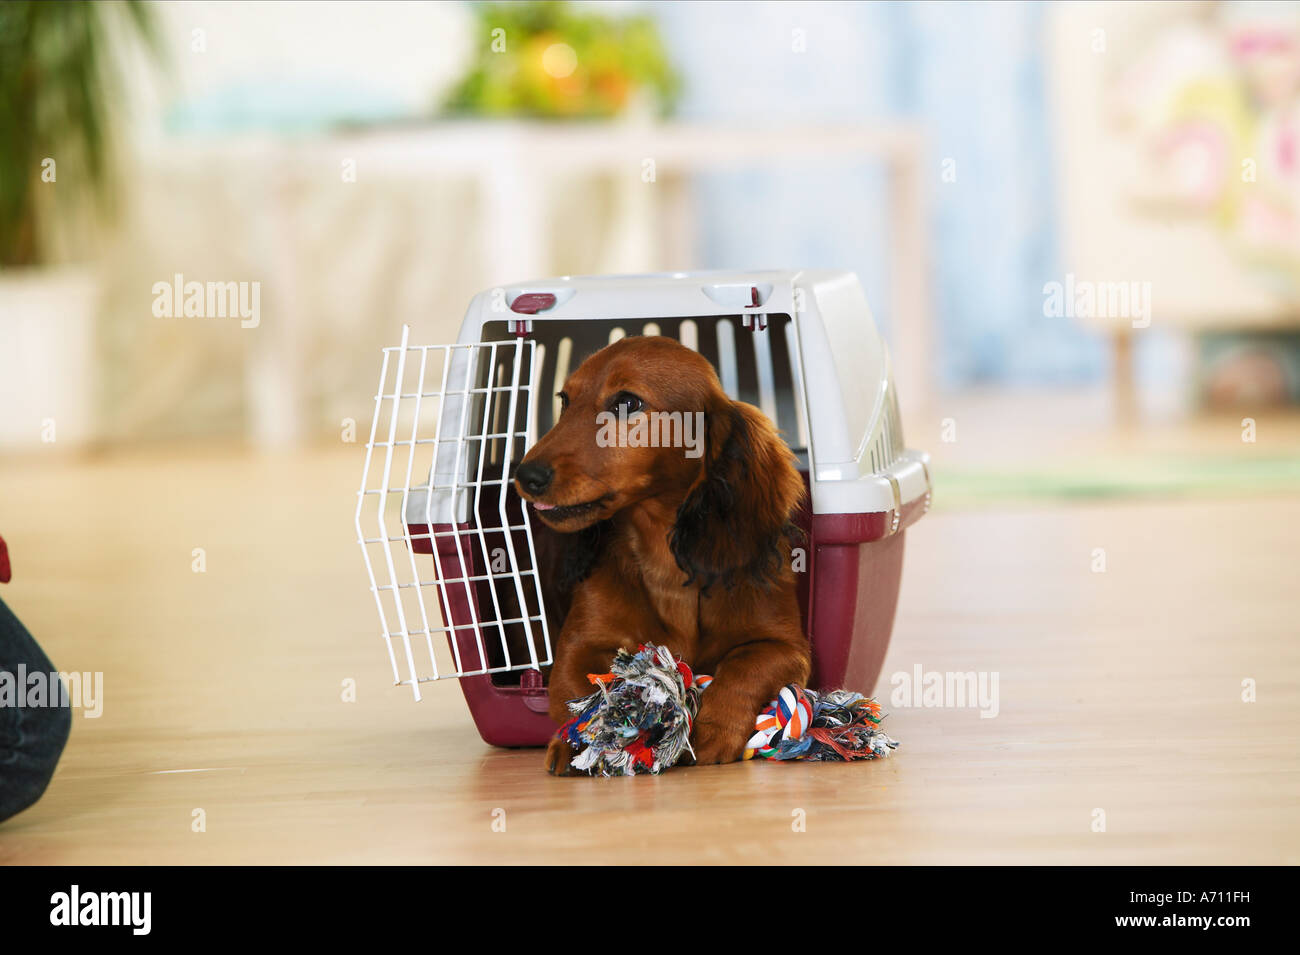 Long Haired Dachshund Puppy Lying In Transport Box With Toy Rope Stock Photo Alamy